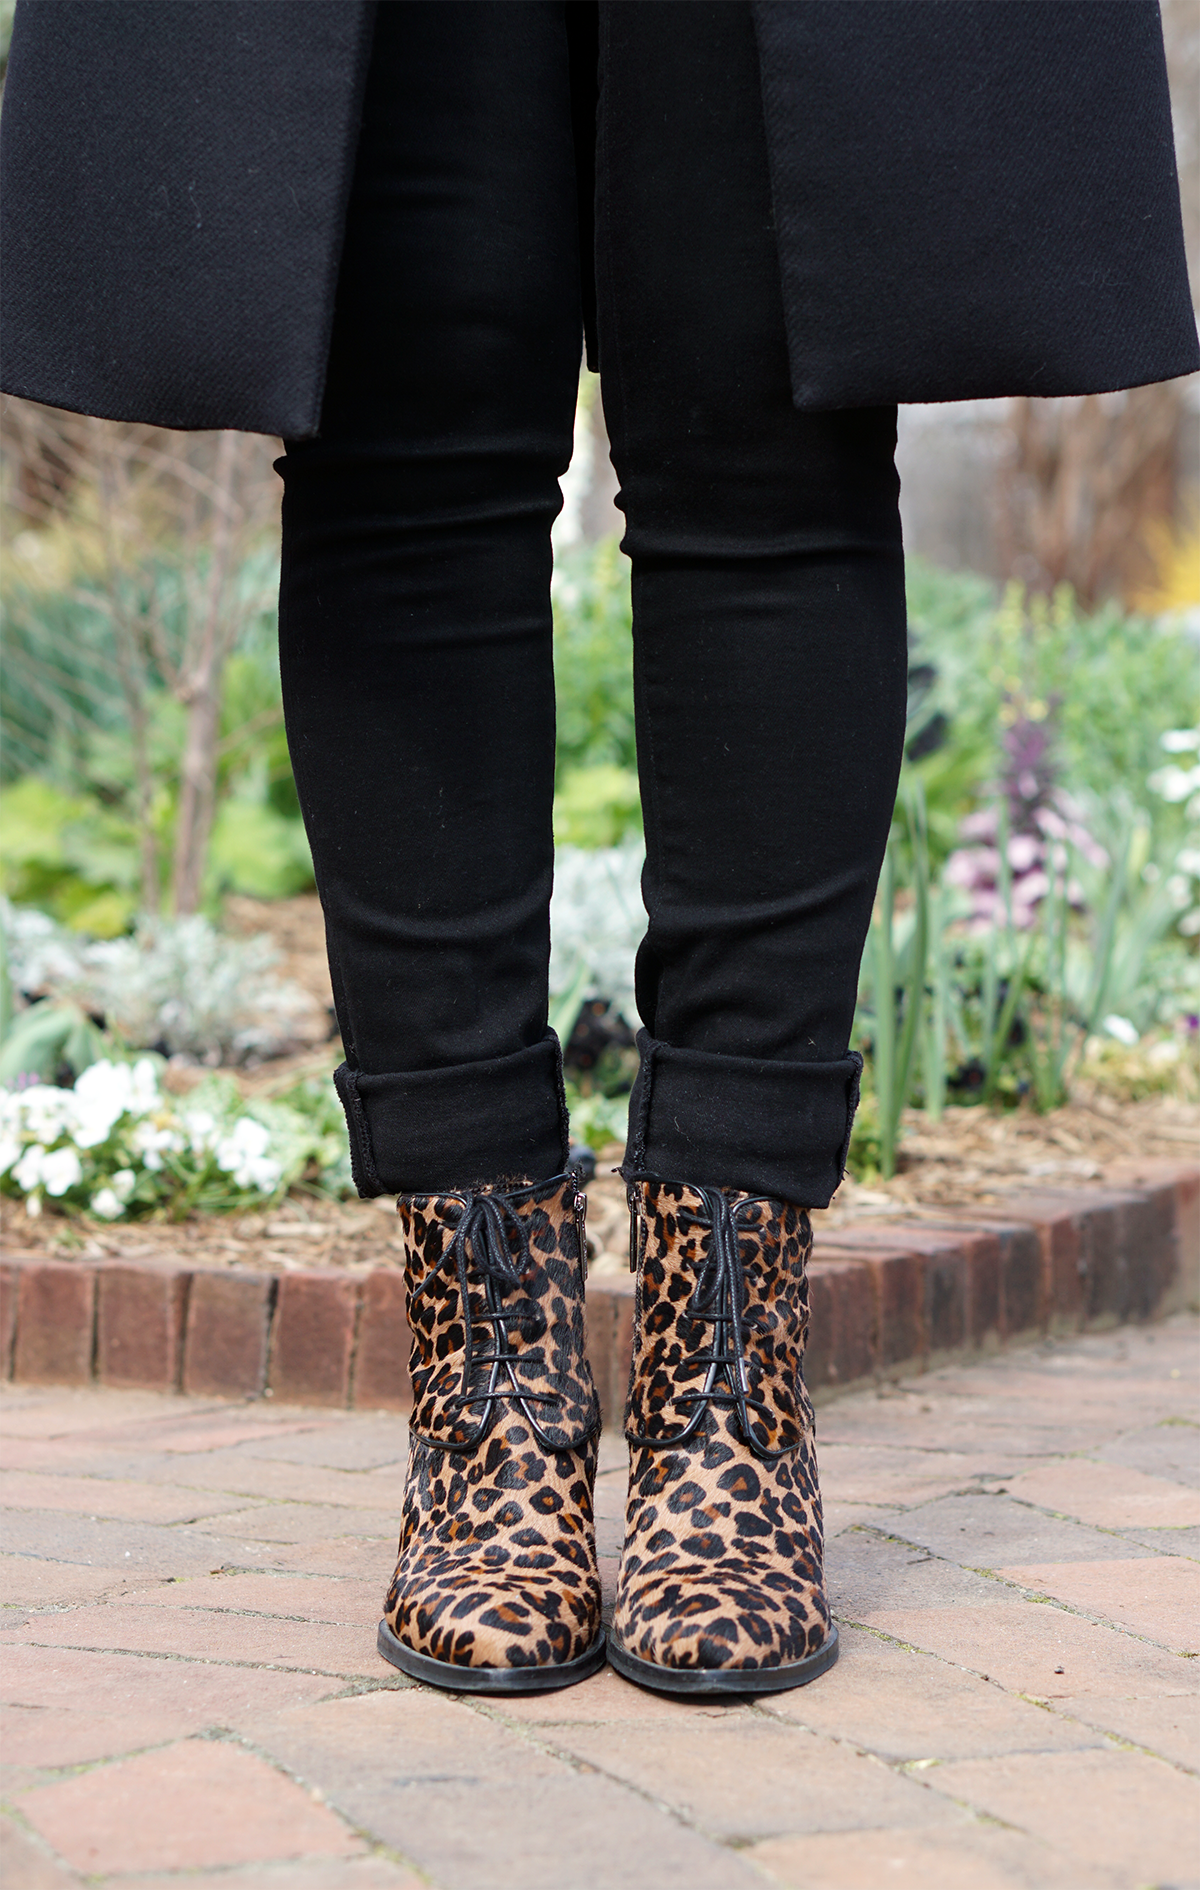 Leopard print, ankle boots, booties, vest, sleeveless, high waist, skinny, jeans, jacket, tribal, monochrome, how to, what to wear, 3 ways to wear, fashion, style, casual, every day, spring, fall, autumn